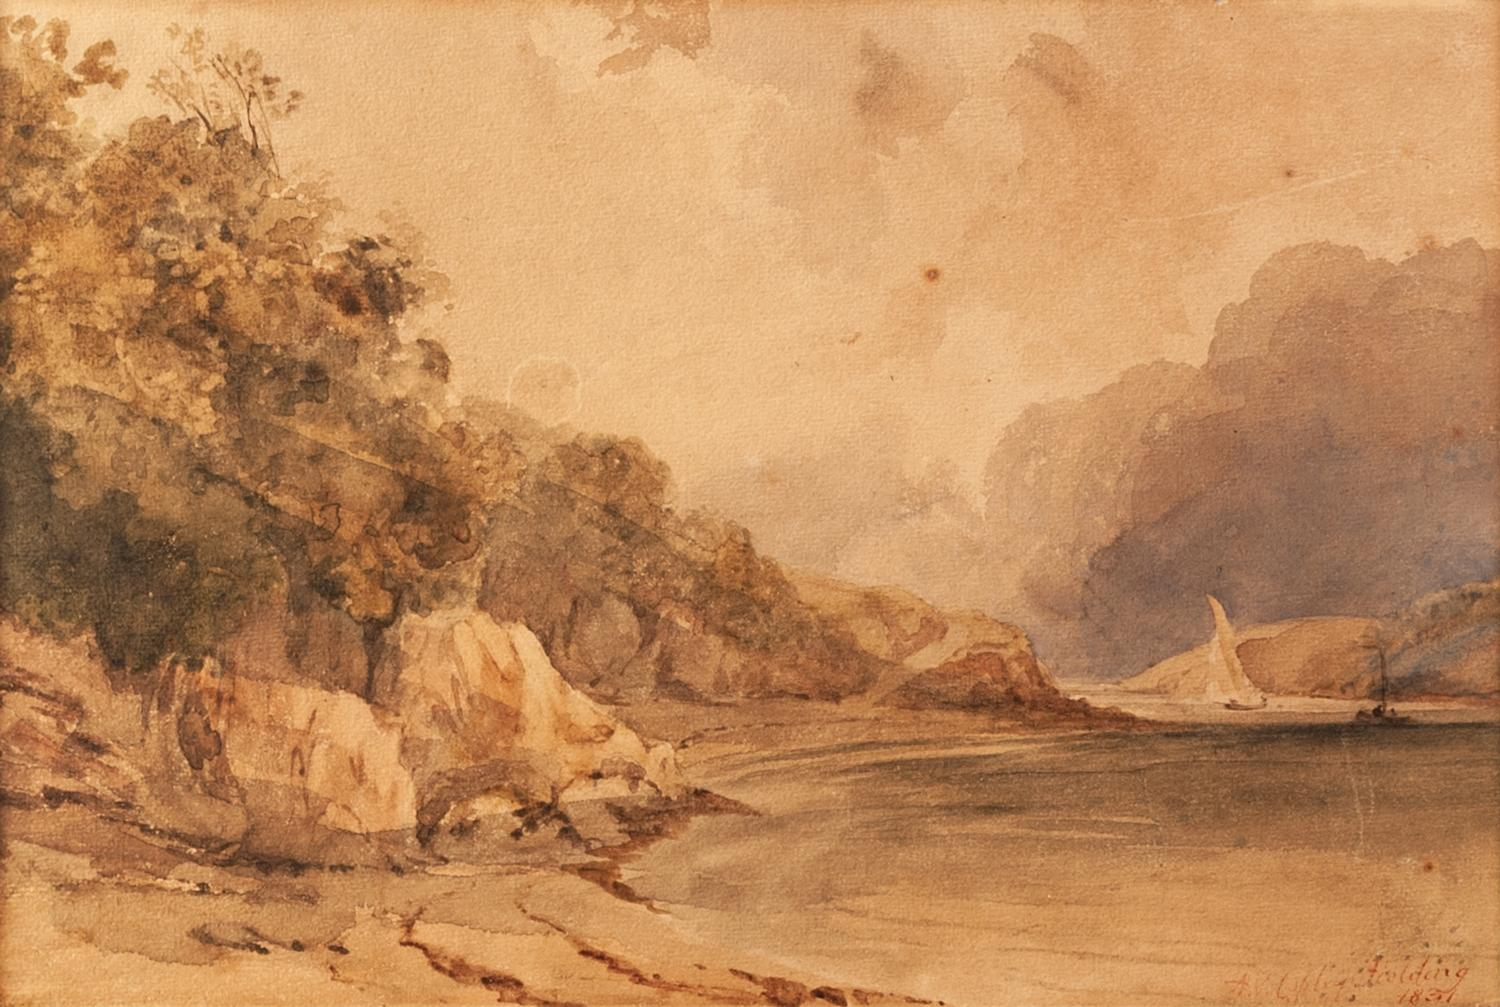 Lot 174 - ANTHONY VANDYKE COPLEY FIELDING RWS (1787 - 1855) Watercolour Lakeland Landscape Signed and dated